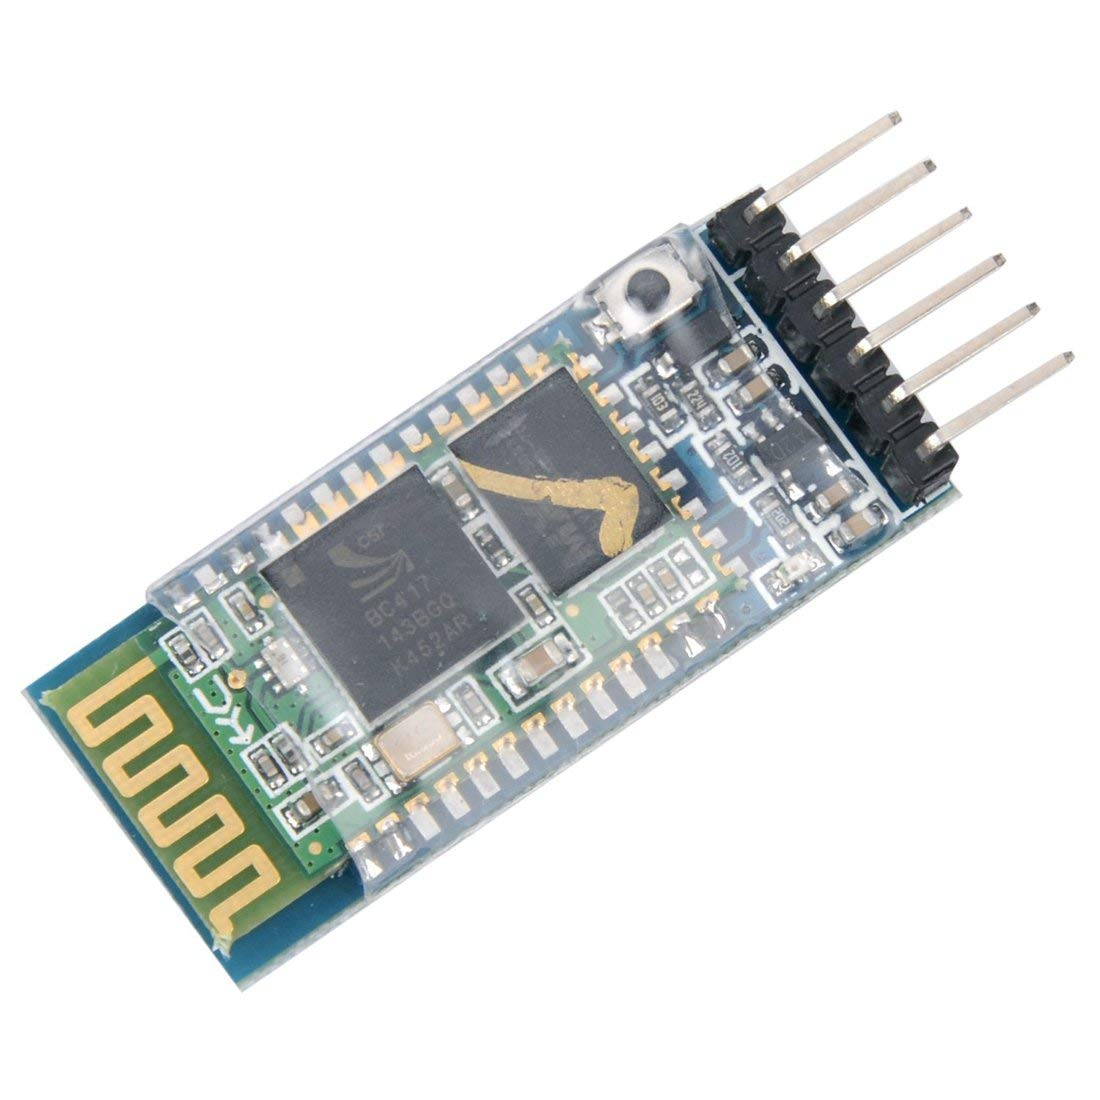 HC-05 6 Pin Wireless Bluetooth RF Transceiver Module Serial BT Module for Arduino